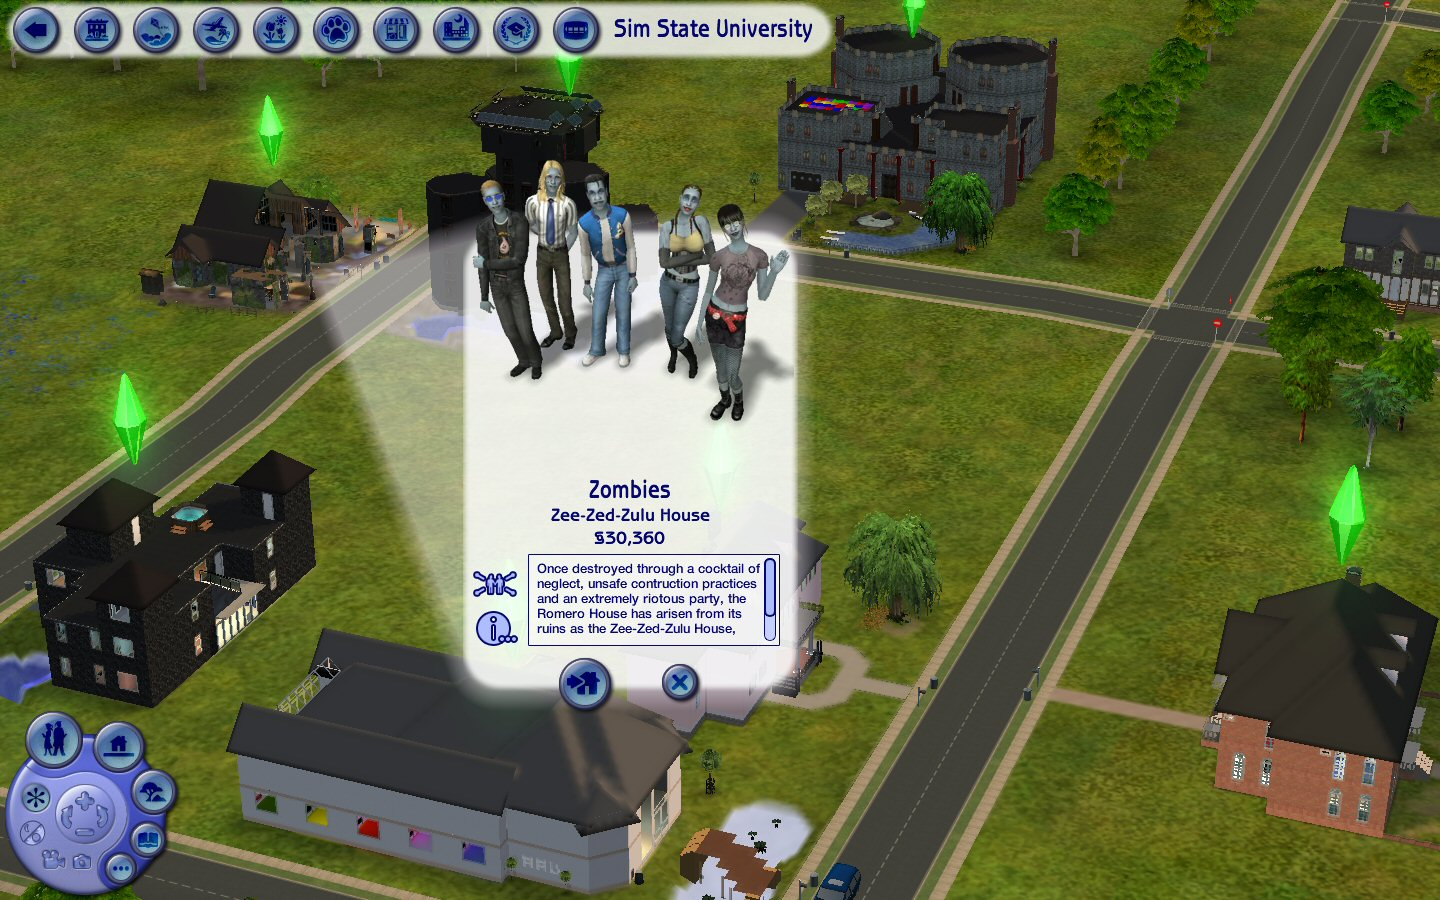 [Image: ShowUsYourSims-Zombies1-1.jpg]